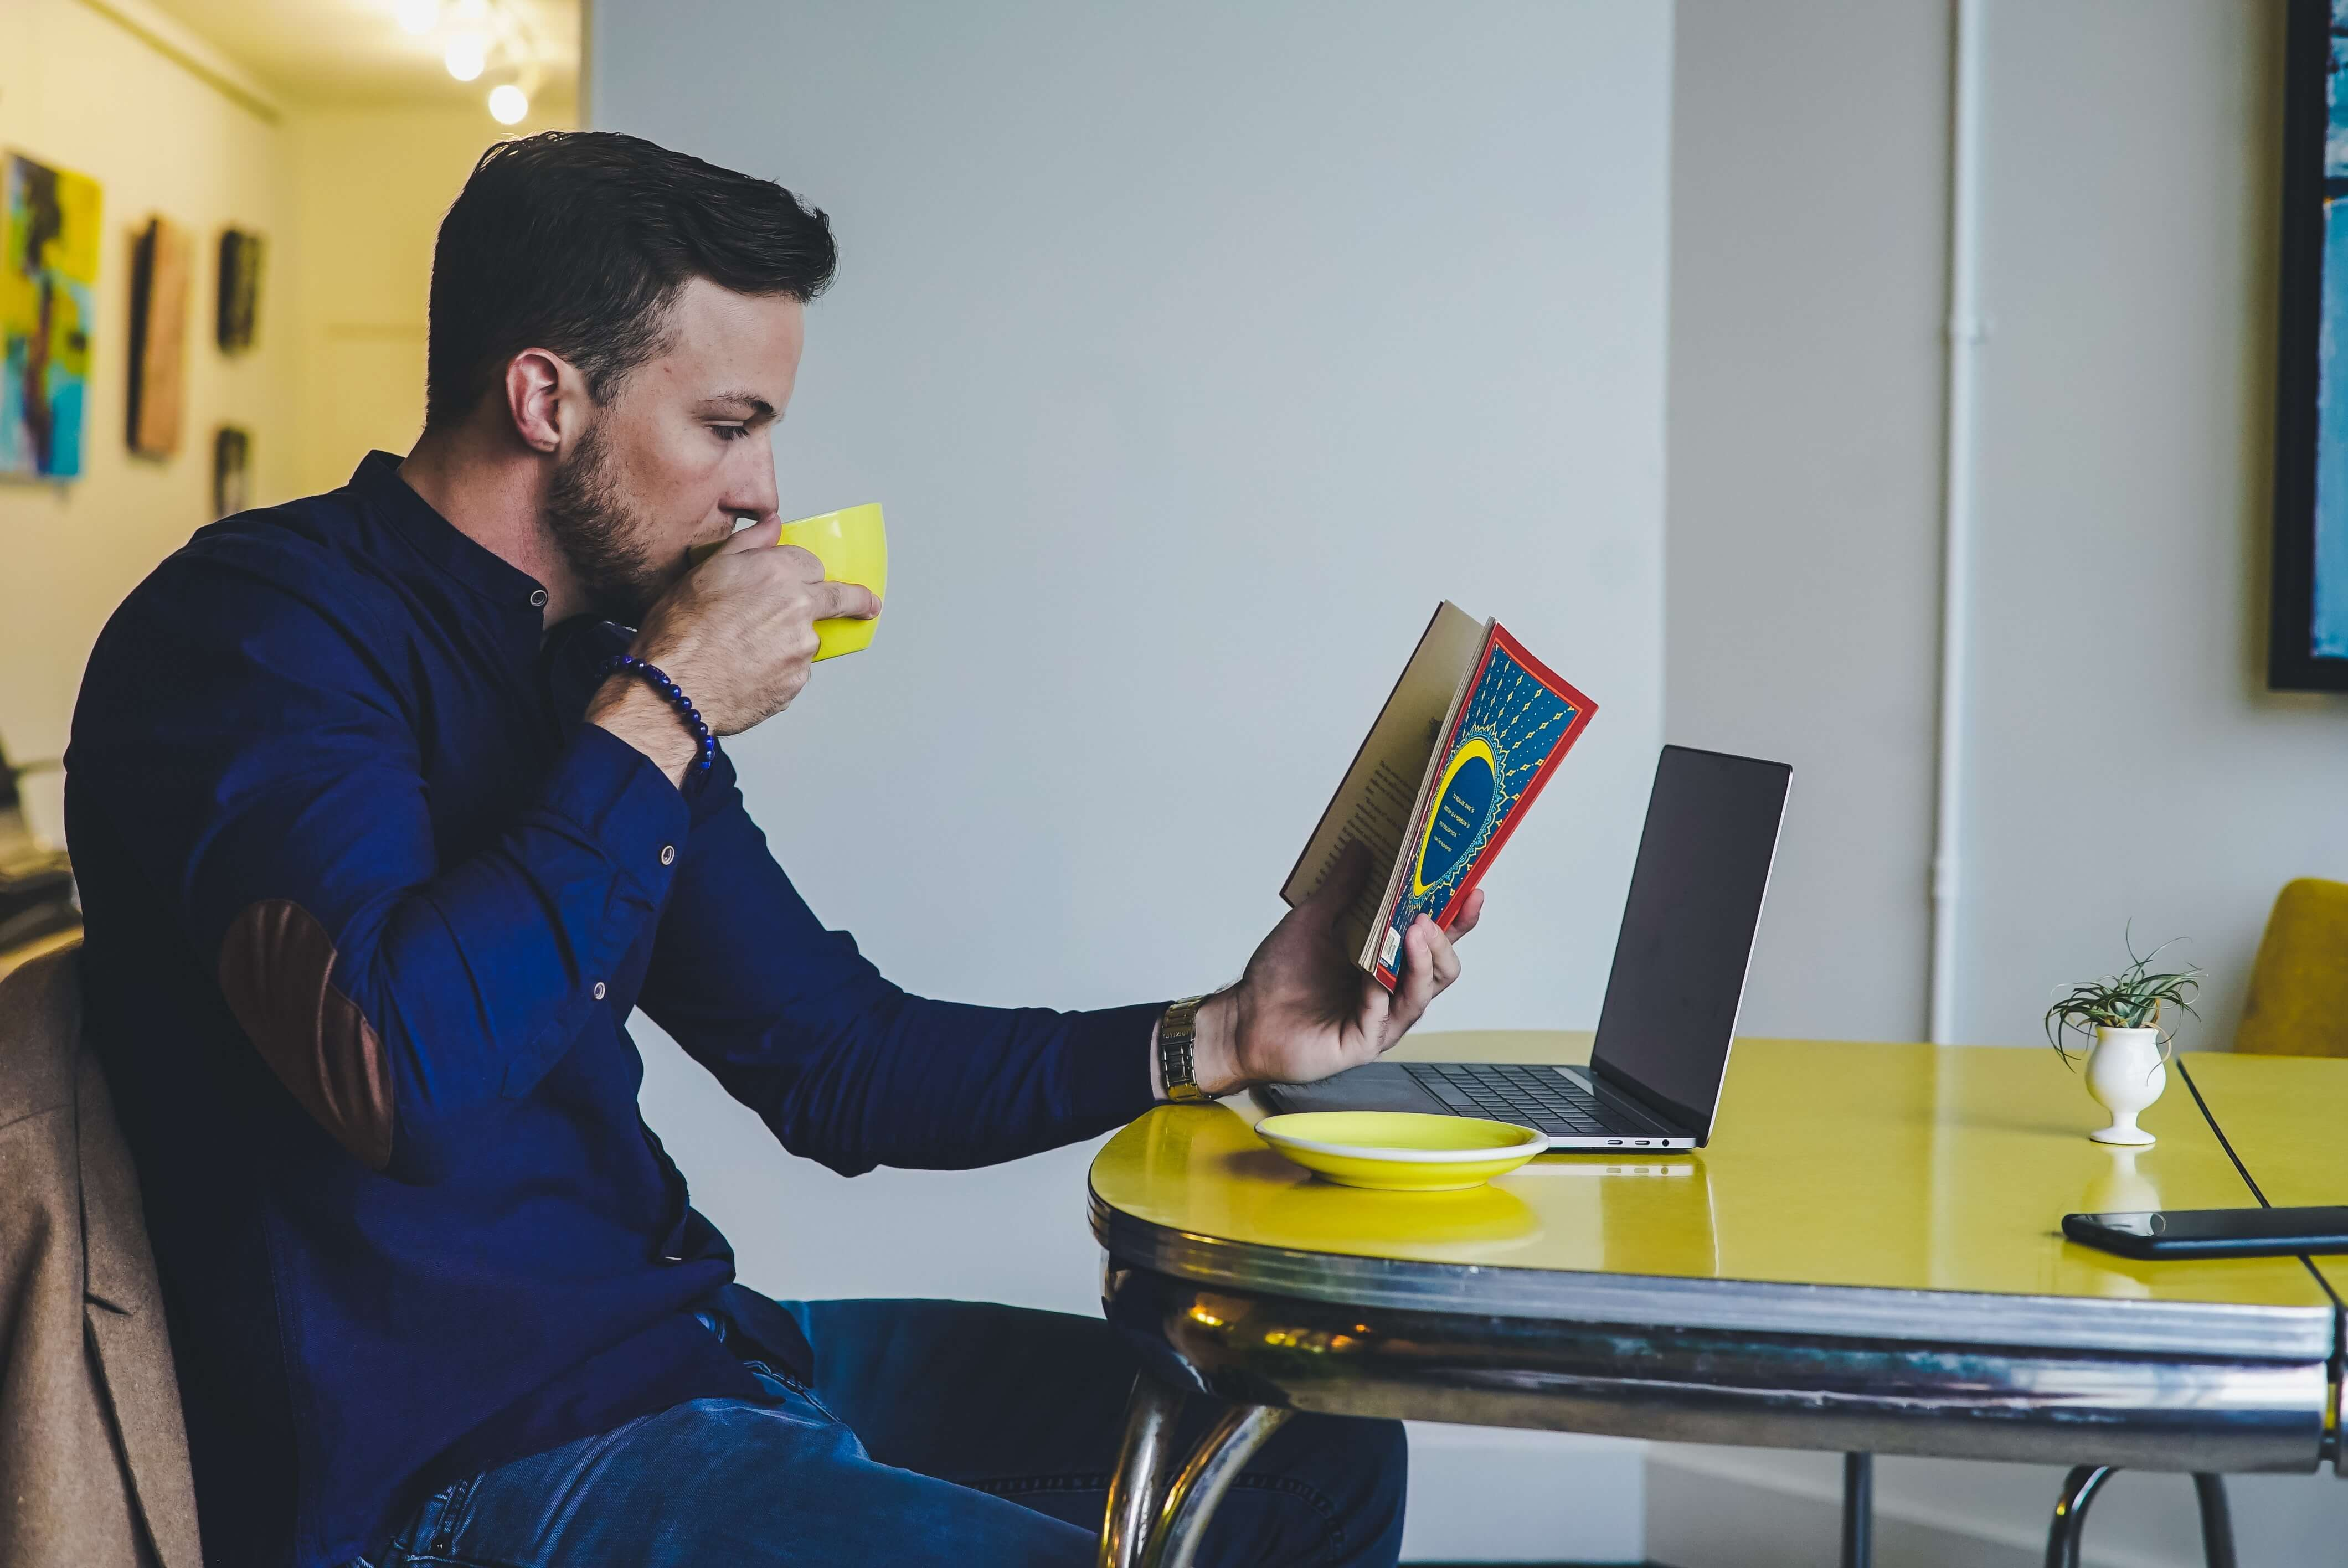 Man drinks coffee at a table while reading about heutagogy and self-managed learning